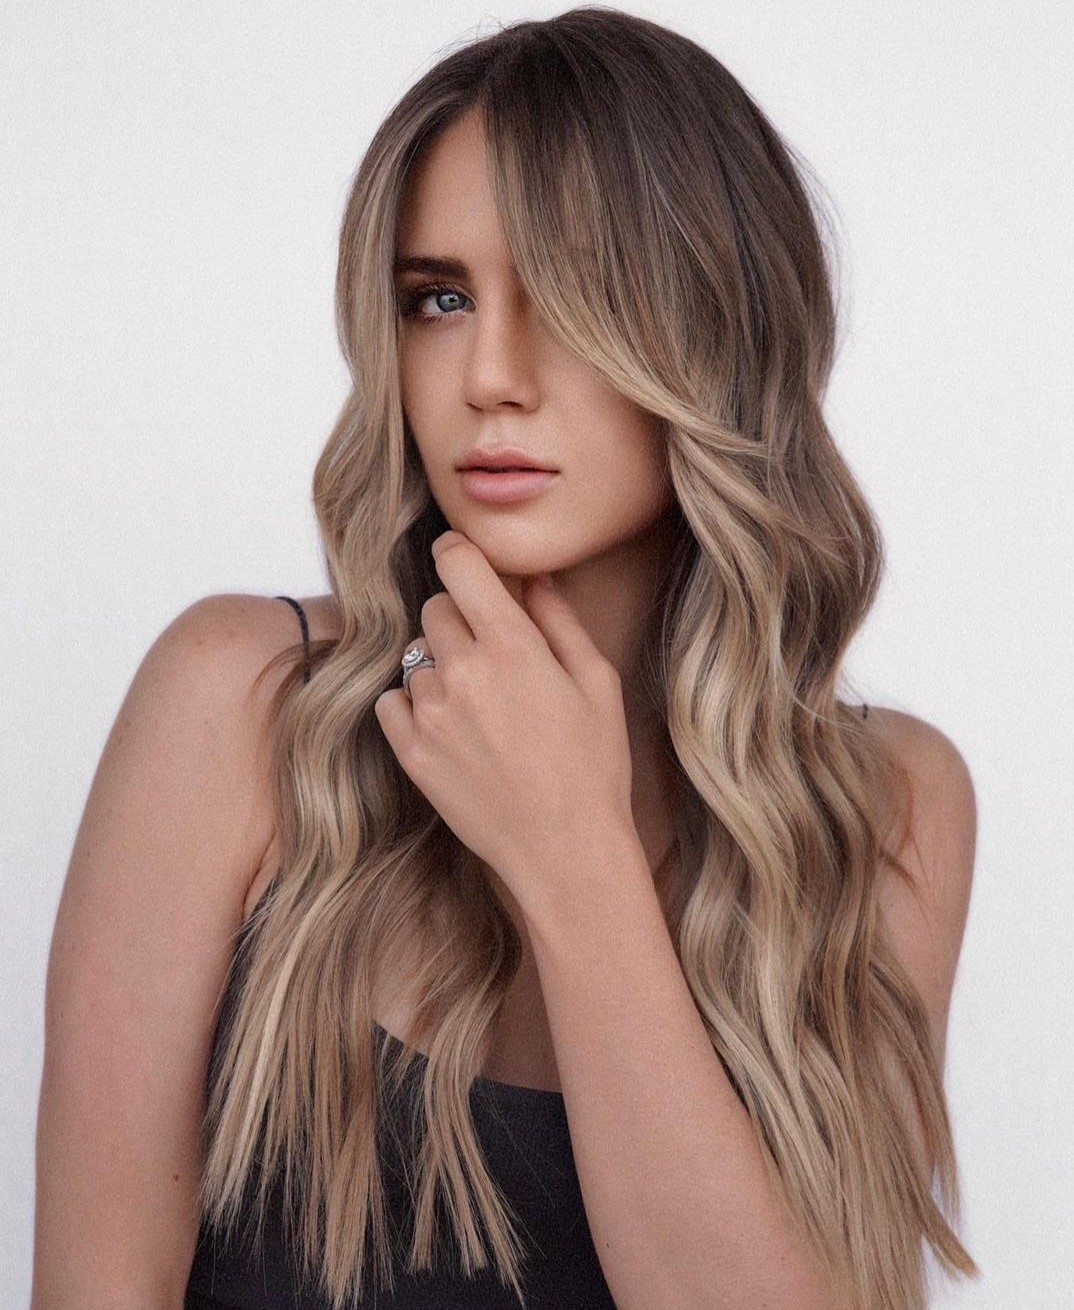 Stunning Long Hair with Blonde Highlights